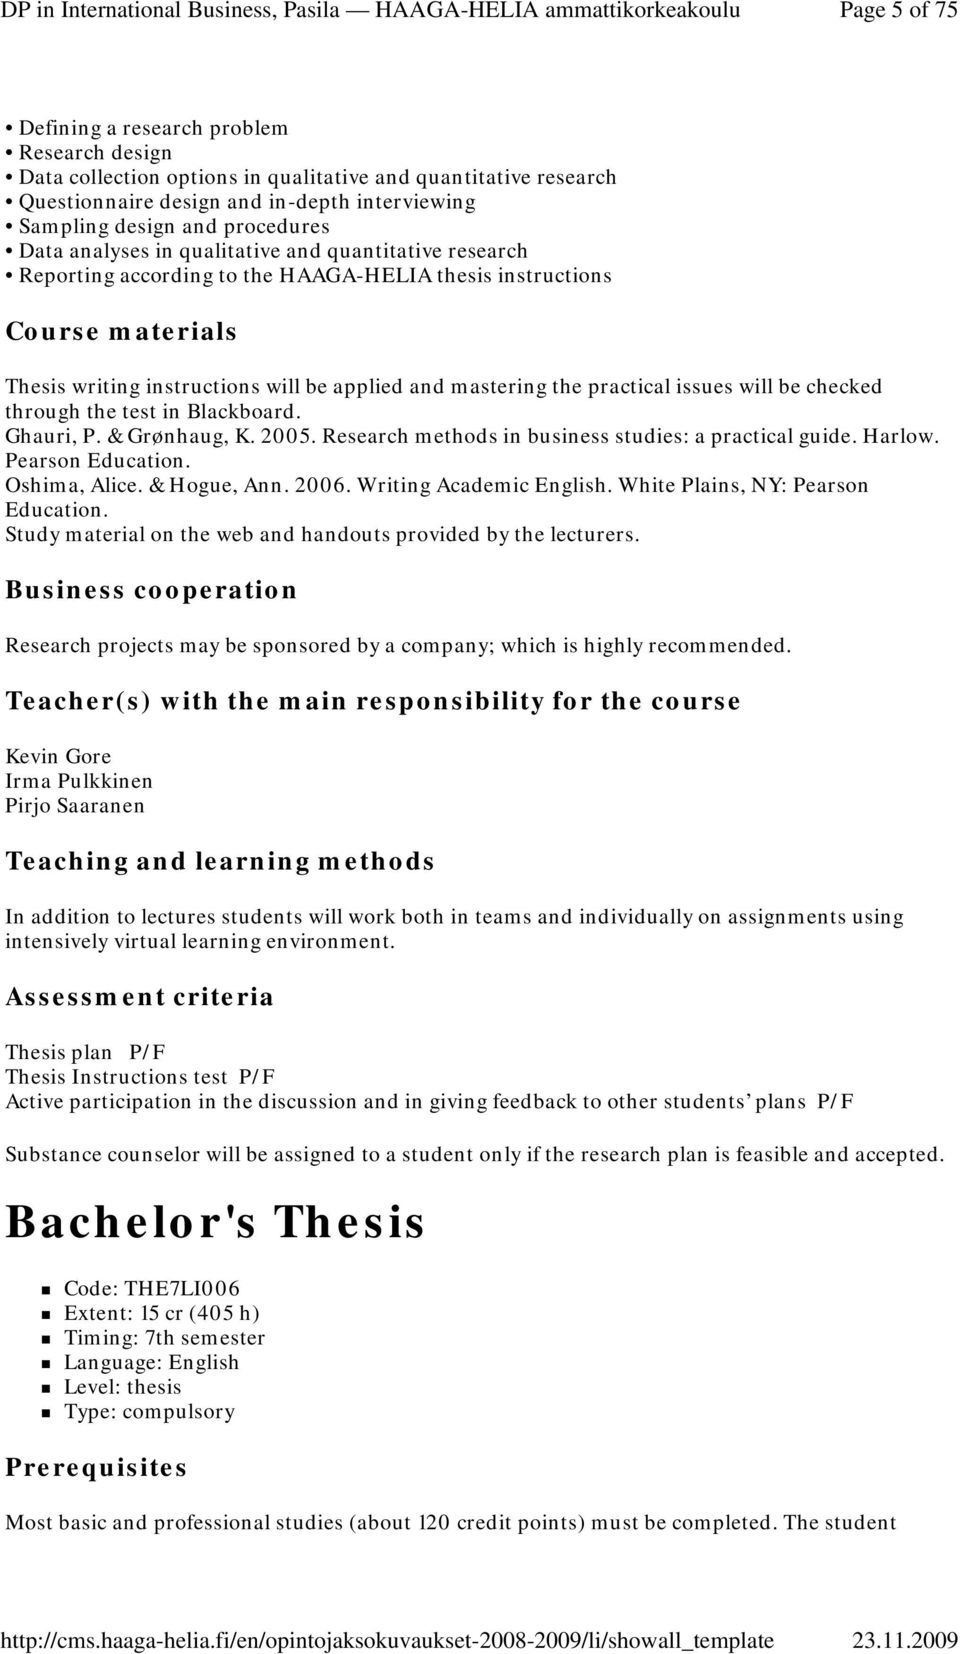 be checked through the test in Blackboard. Ghauri, P. & Grønhaug, K. 2005. Research methods in business studies: a practical guide. Harlow. Pearson Education. Oshima, Alice. & Hogue, Ann. 2006.